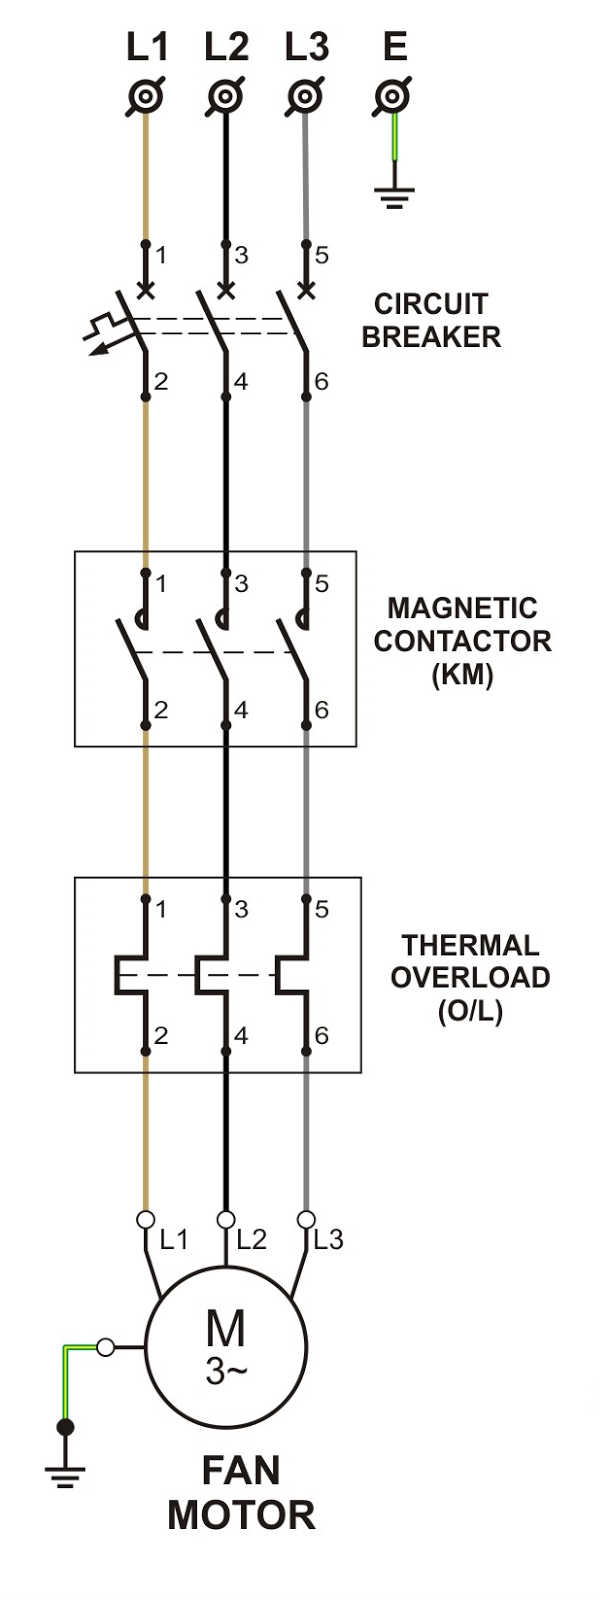 motor overload relay wiring diagrams gallery induction motor symbol [ 610 x 1600 Pixel ]